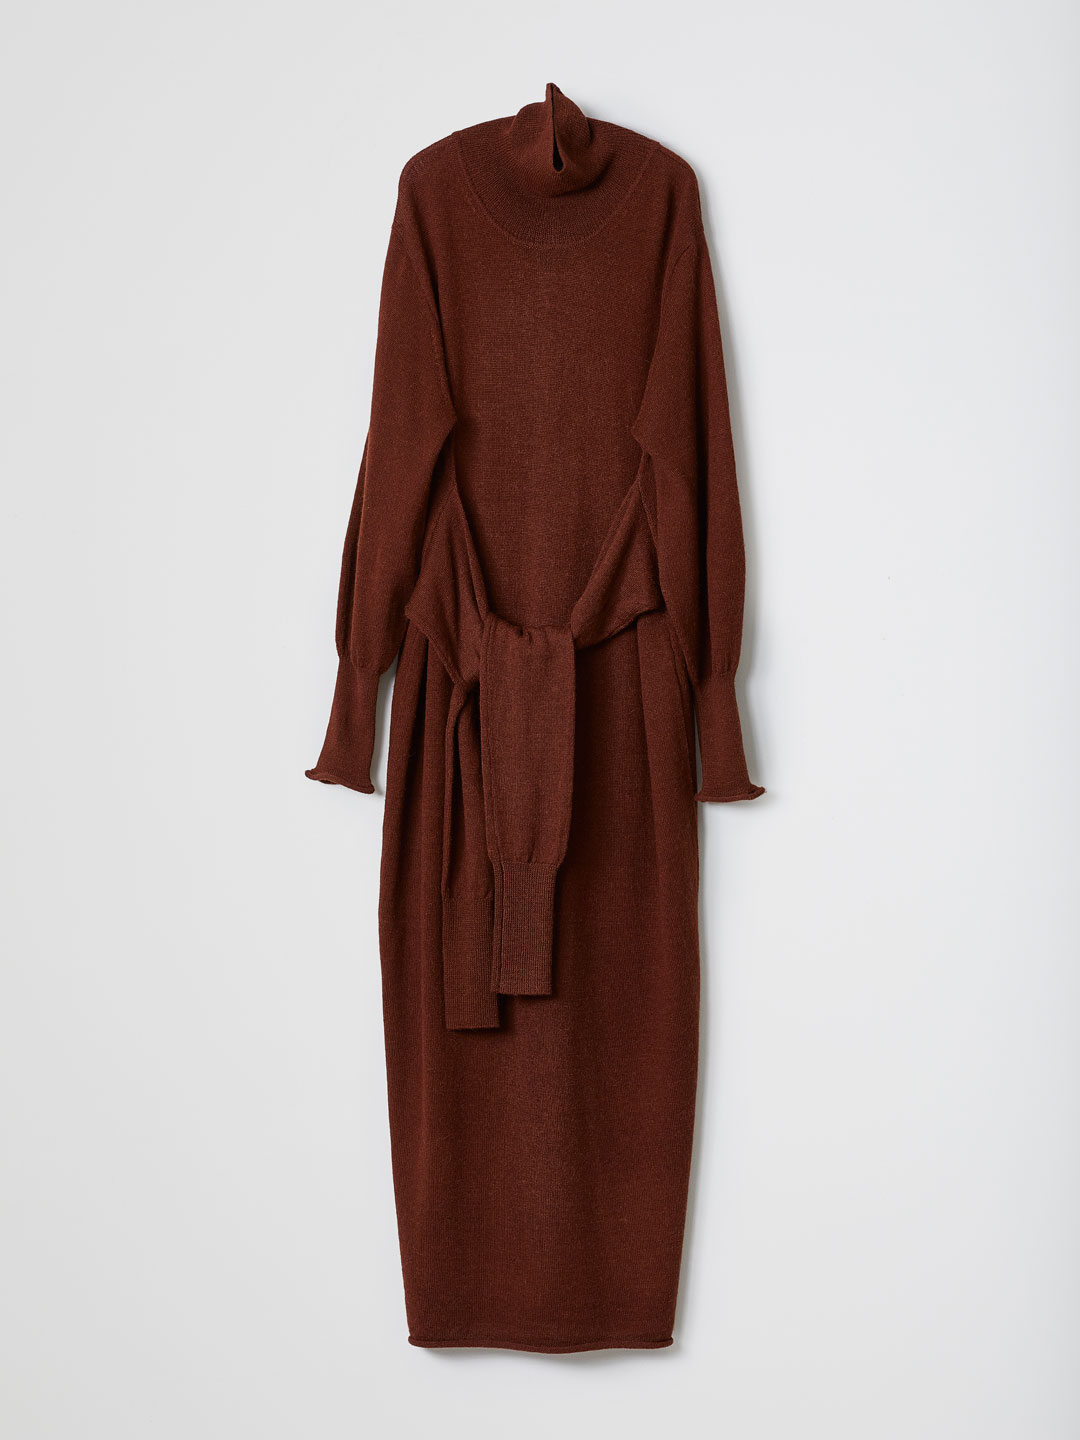 FrontTied Knit Dress - Brown